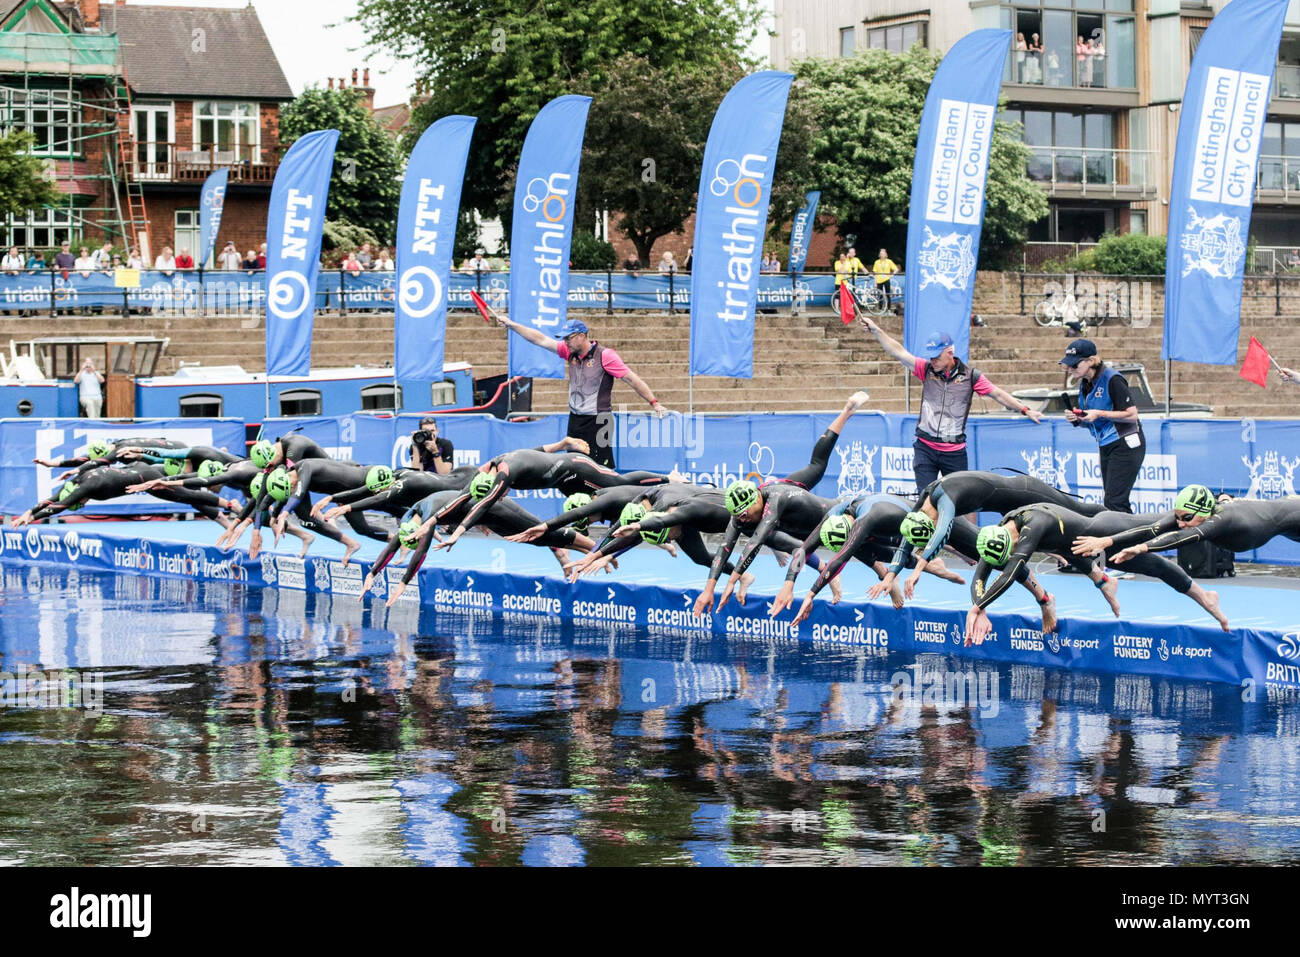 Nottingham, UK. 7th Jun, 2018. Swimmers enter the water from the pontoon to start the Mixed Relay Triathlon   Credit: Dan Cooke Credit: Dan Cooke/Alamy Live News - Stock Image